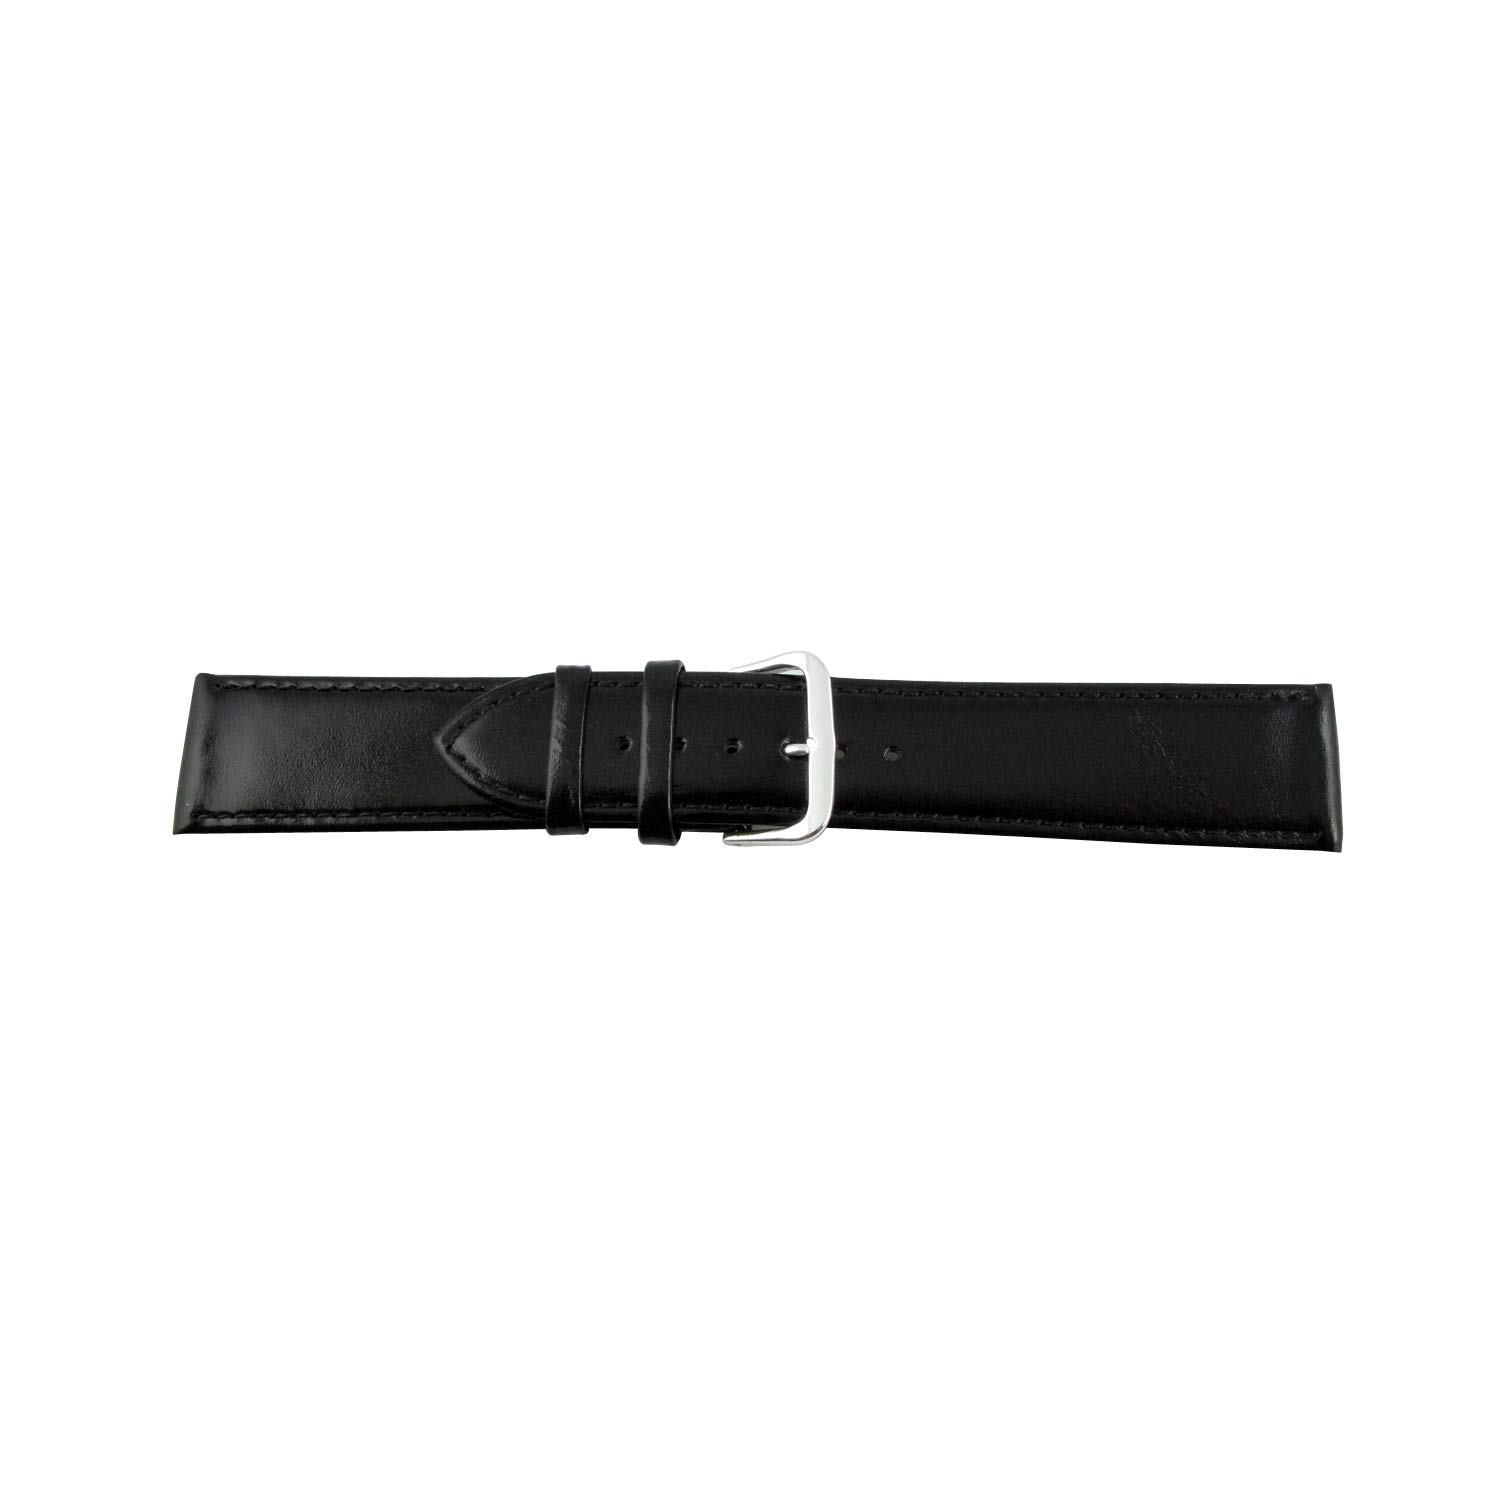 MapofBeauty Unisex 12mm/14mm/16mm/18mm/20mm/22mm Genuine Leather Business Style Watch Strap (Black Strap)